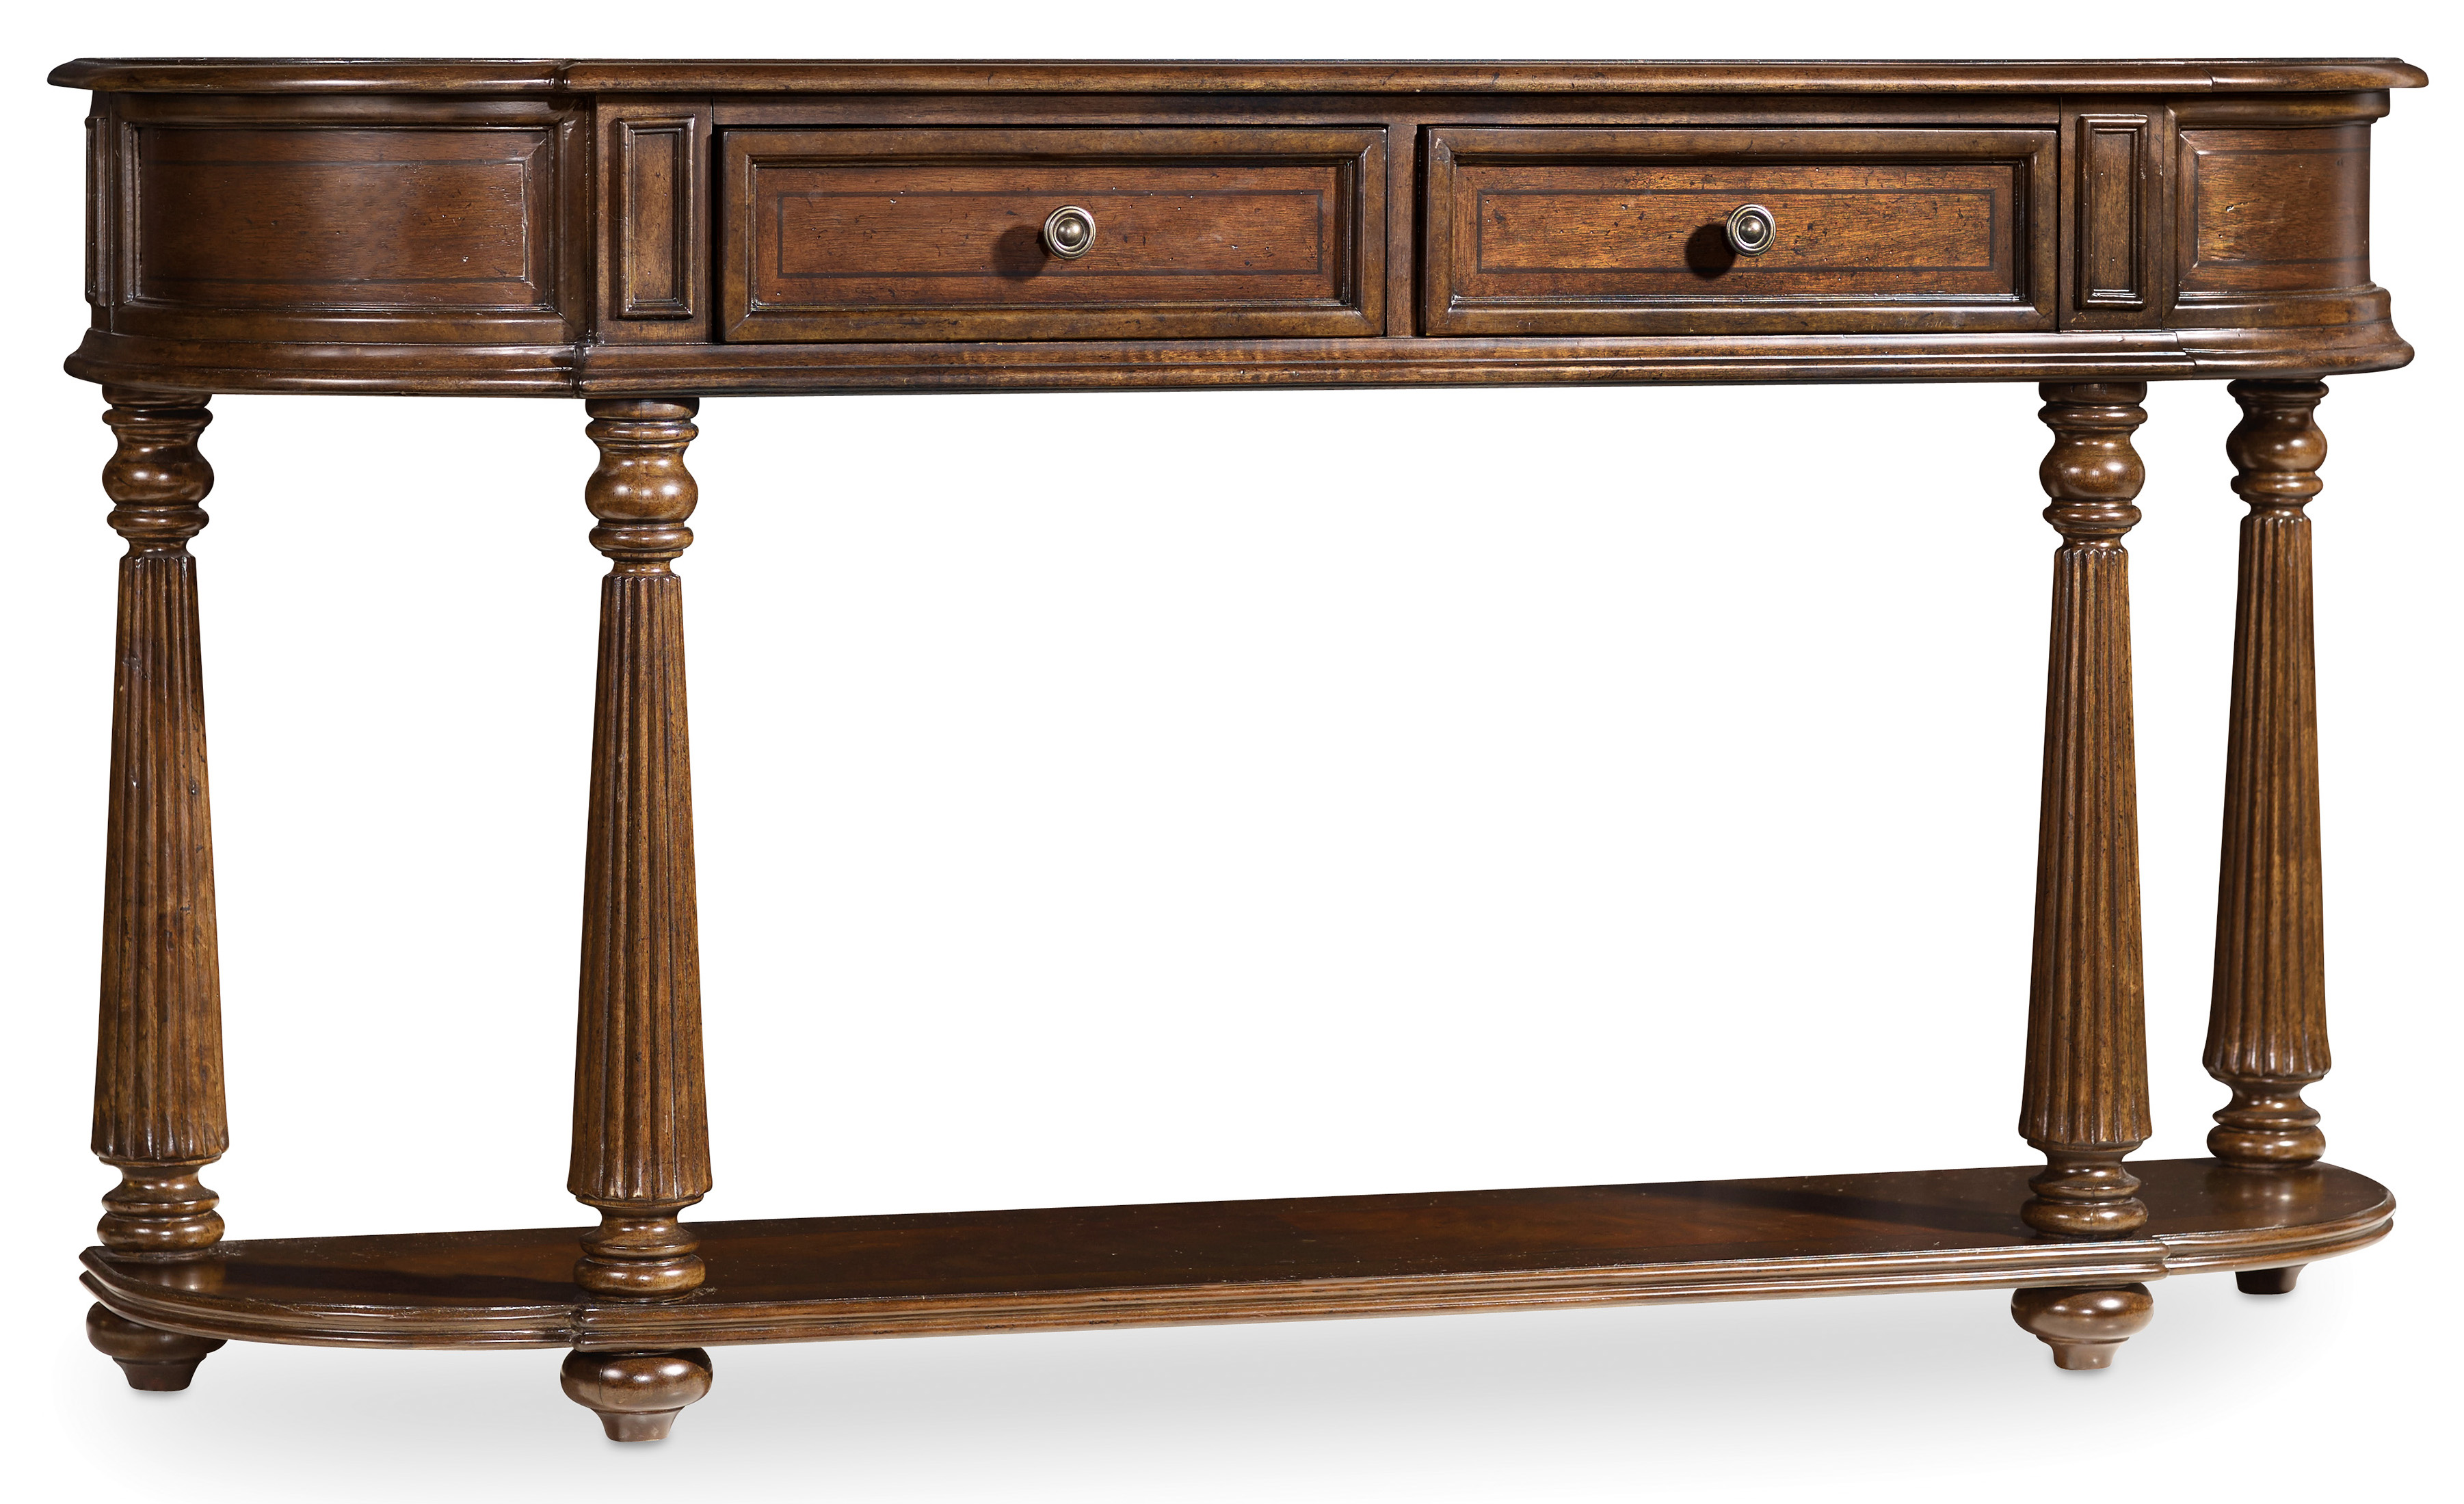 Leesburg Demilune Hall Console by Hooker Furniture at Alison Craig Home Furnishings